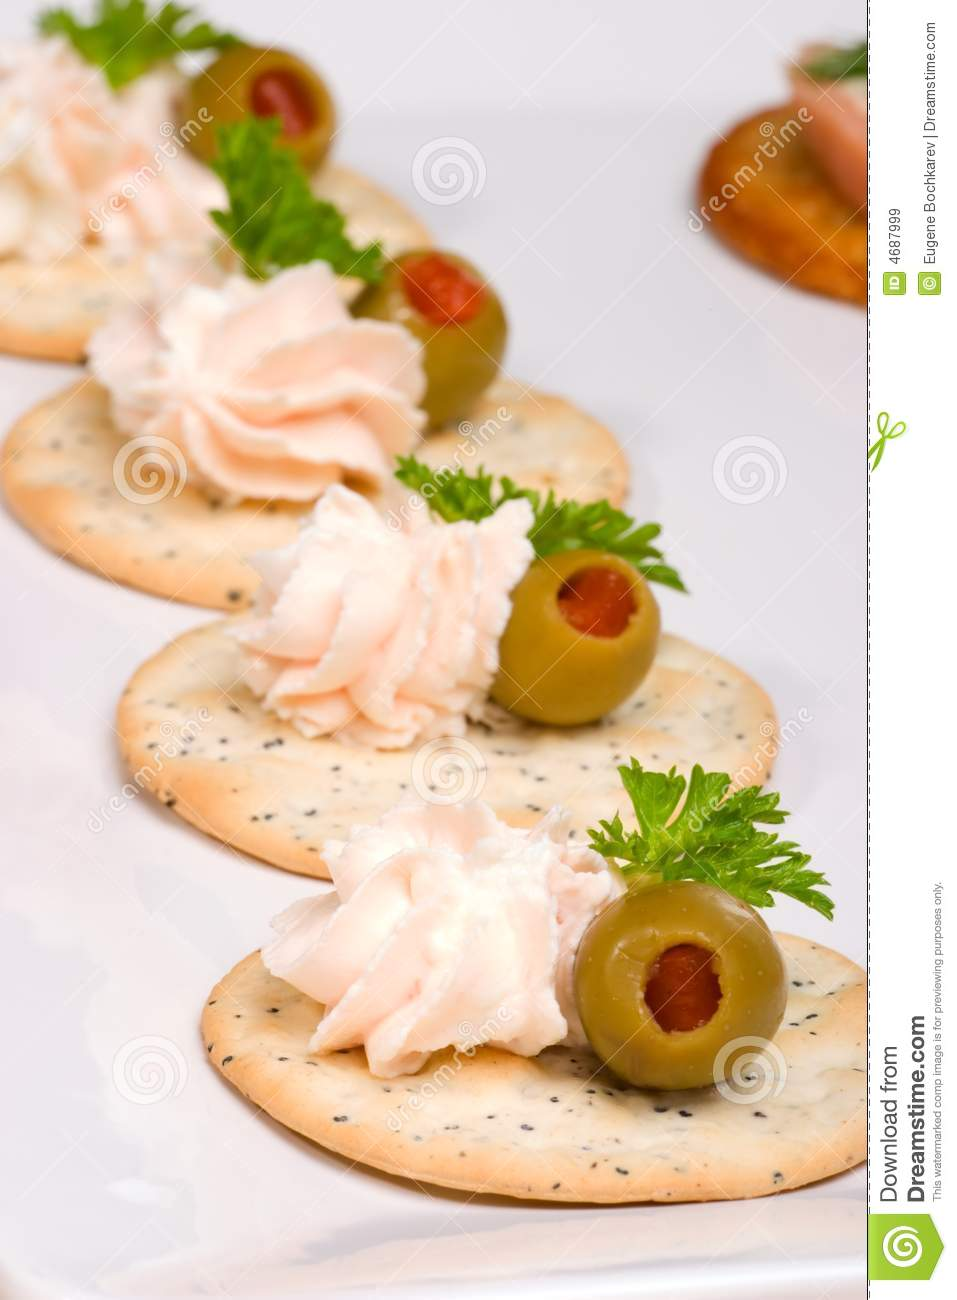 Salmon cheese canape royalty free stock images image for Cream cheese canape